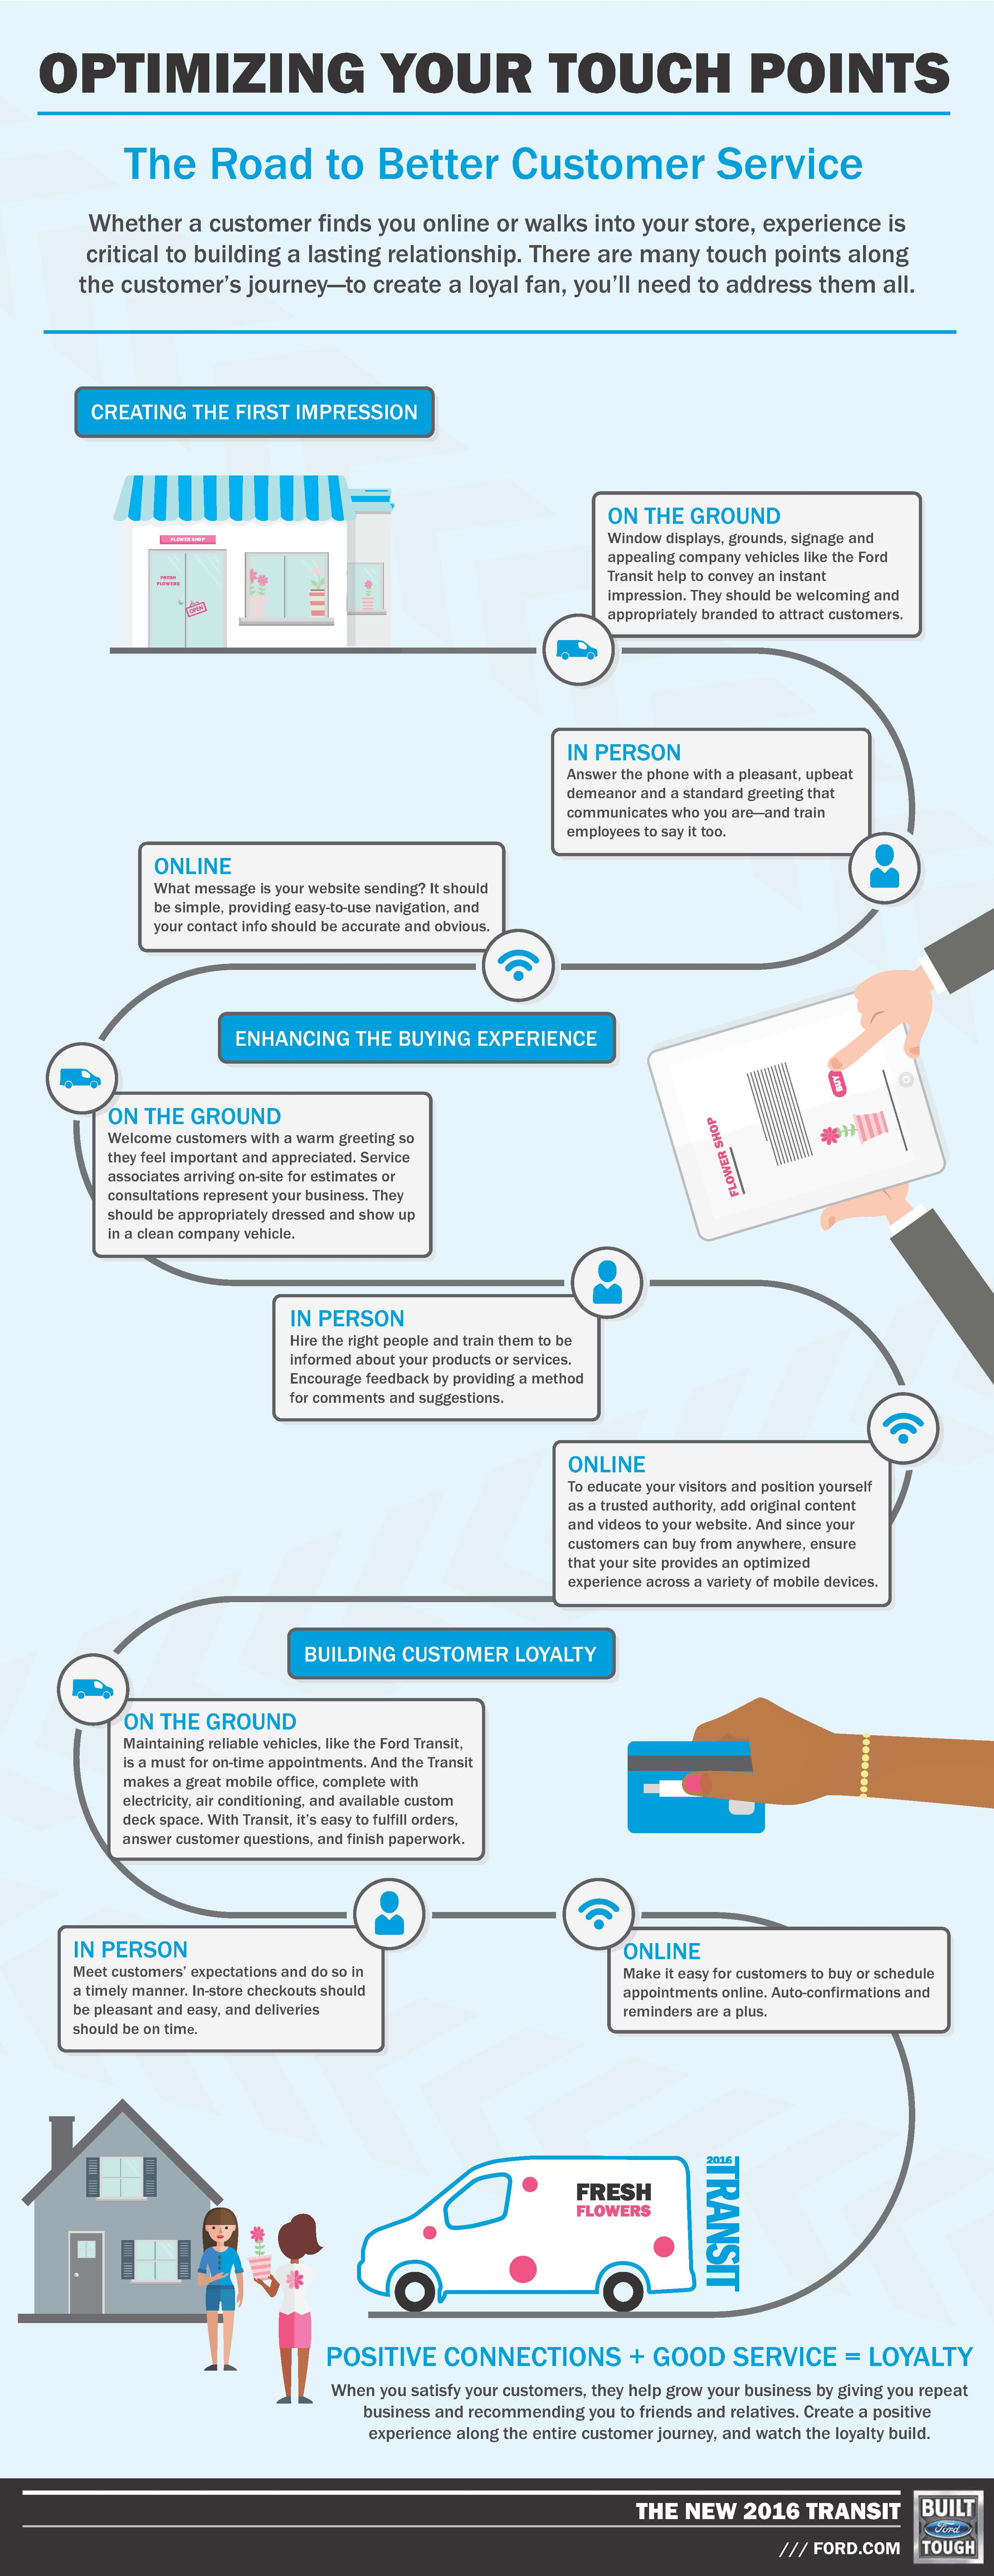 Ford Motor Company (Infographic)